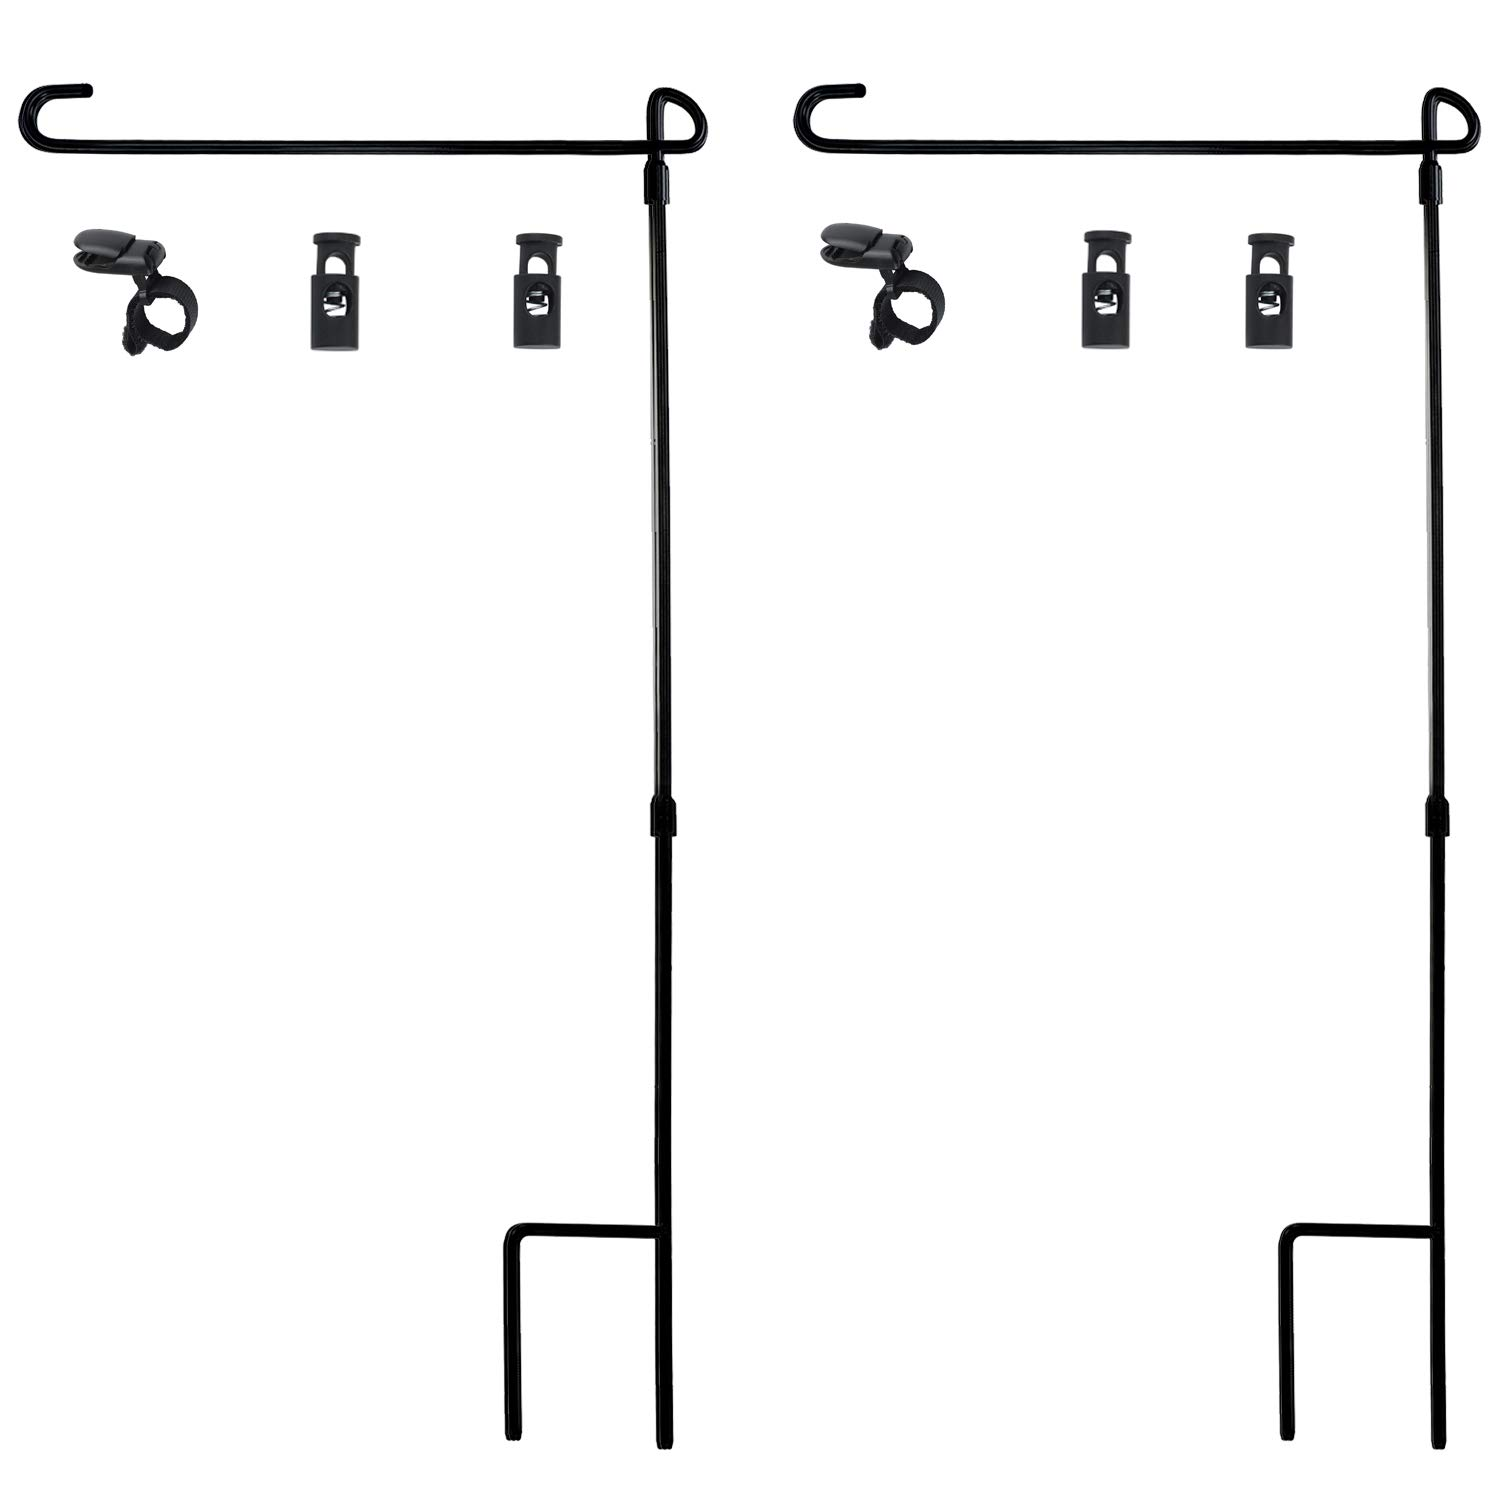 HOOSUN Garden Flag Stand, Premium Garden Flag Pole Holder Metal Wrought Iron Powder-Coated Weather-Proof Paint 36.5'' H x 16.5'' W (3 Piece Set) (2 Pack) with Tiger Anti-Wind Clip and Spring Stoppers